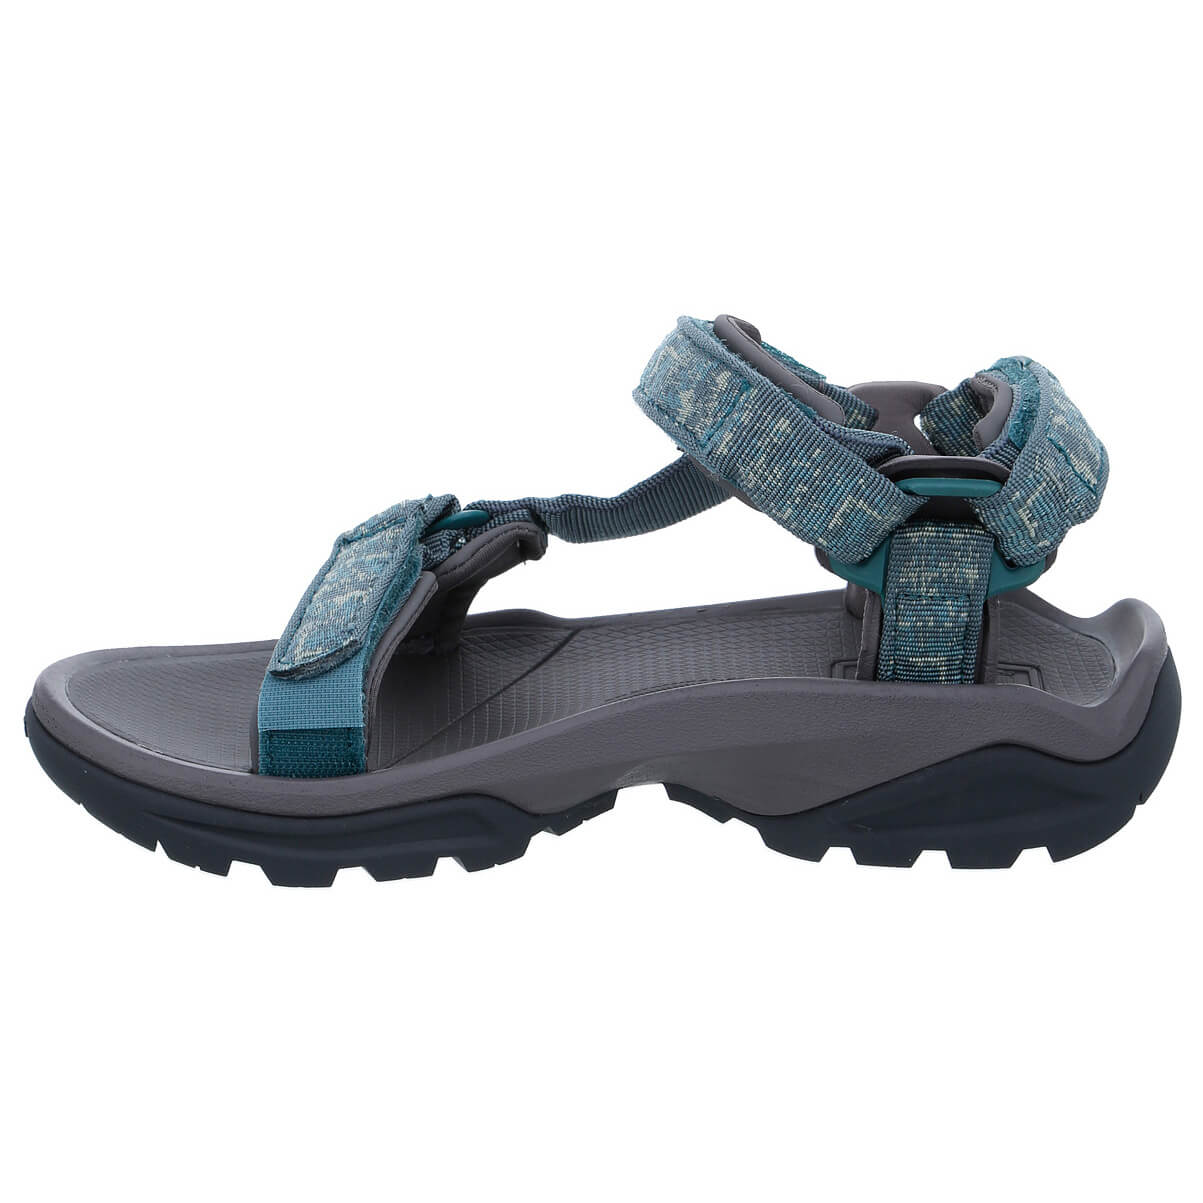 b0e0189a0df6 ... Teva - Women s Terra Fi 4 - Sandals ...